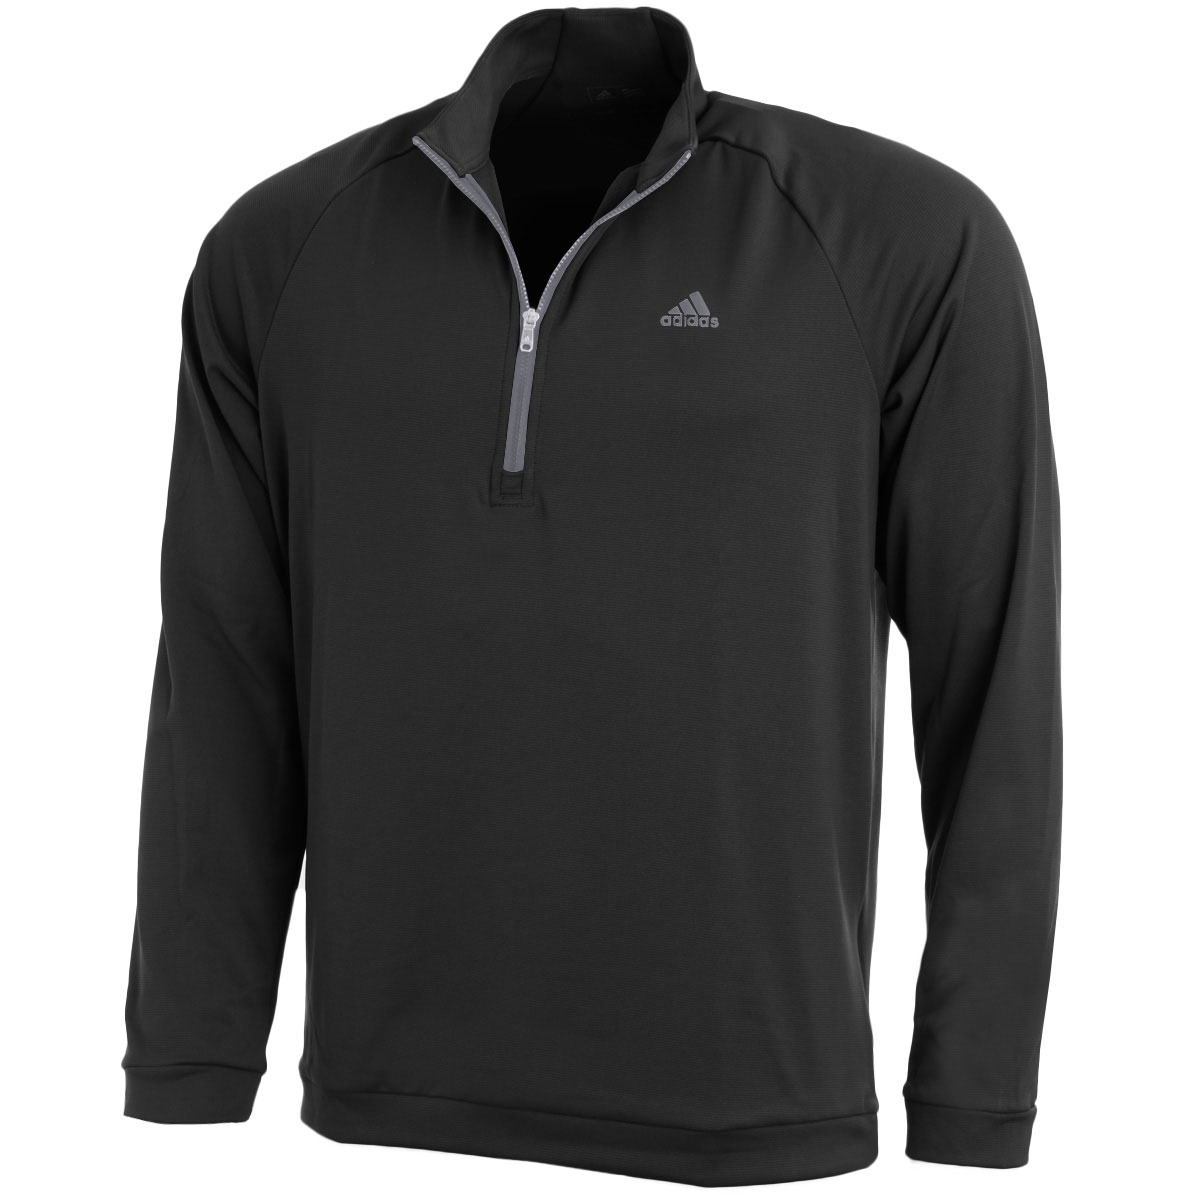 adidas golf performance half-zip sweater,adidas golf mid greywhite ... 7cc3a4c645b